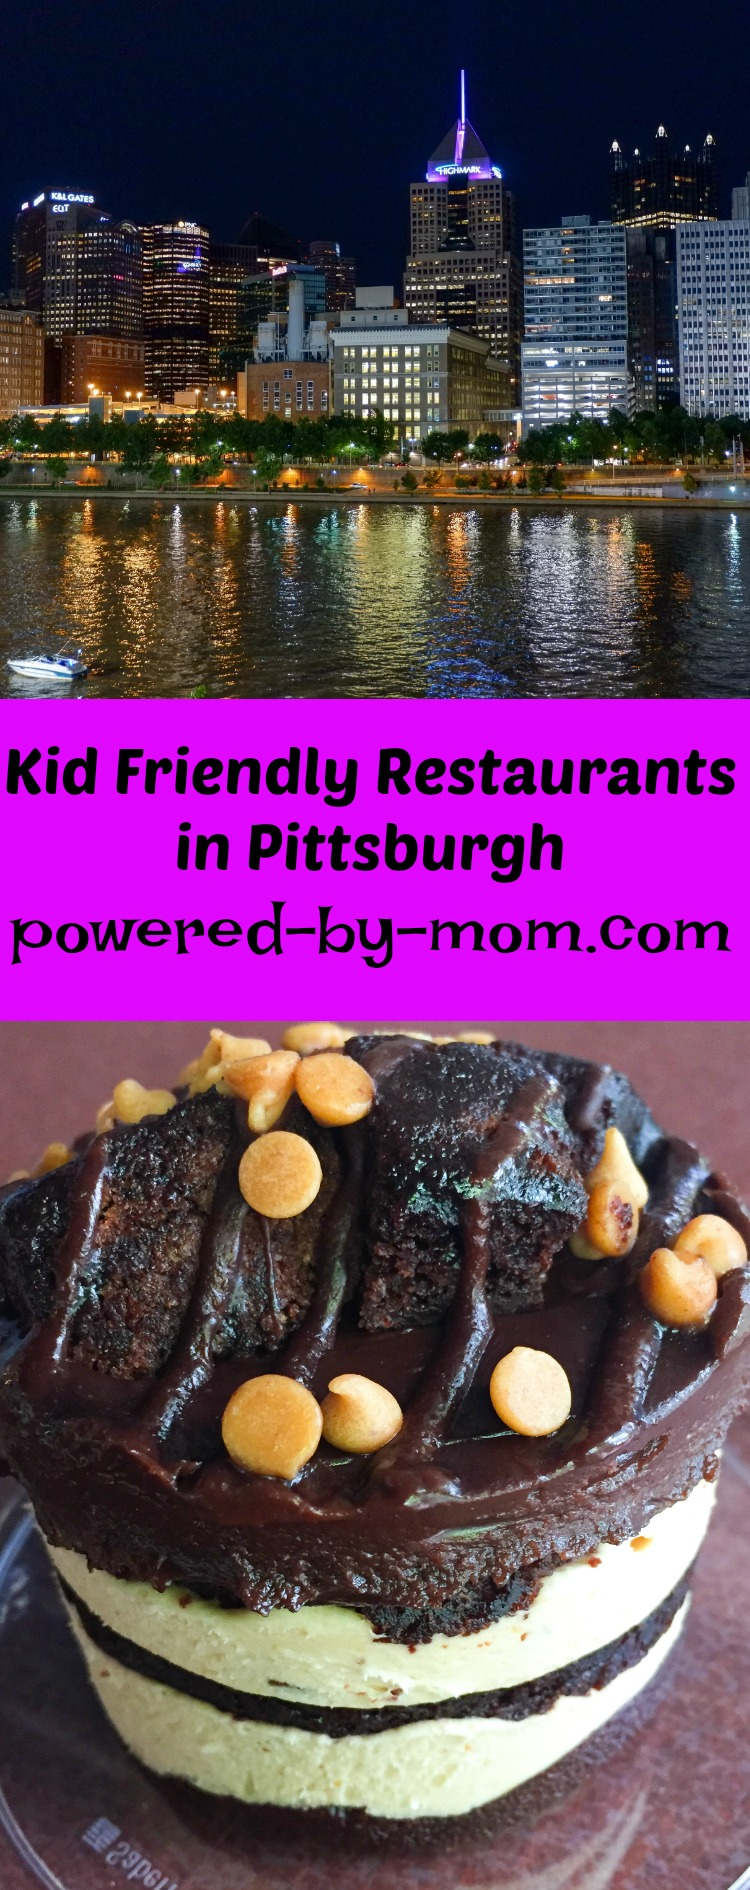 kid-friendly restaurants in Pittsburgh